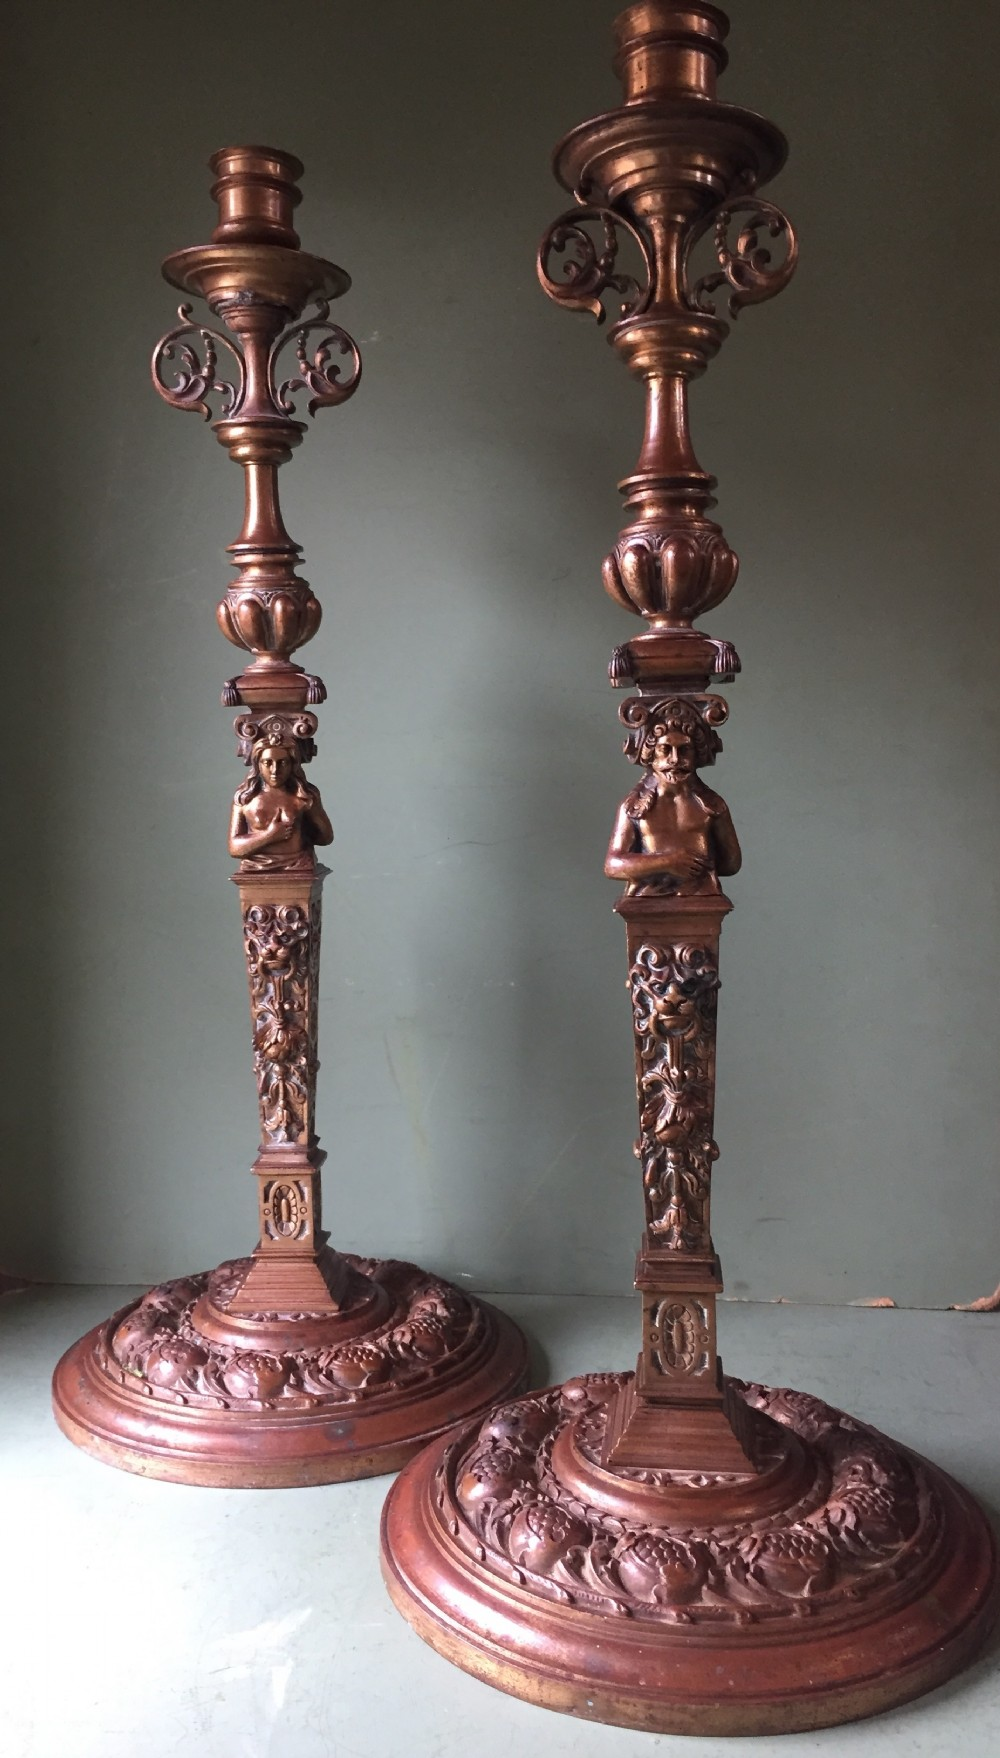 large pair of c19th cast bronze candlesticks in the mannerist late renaissance style